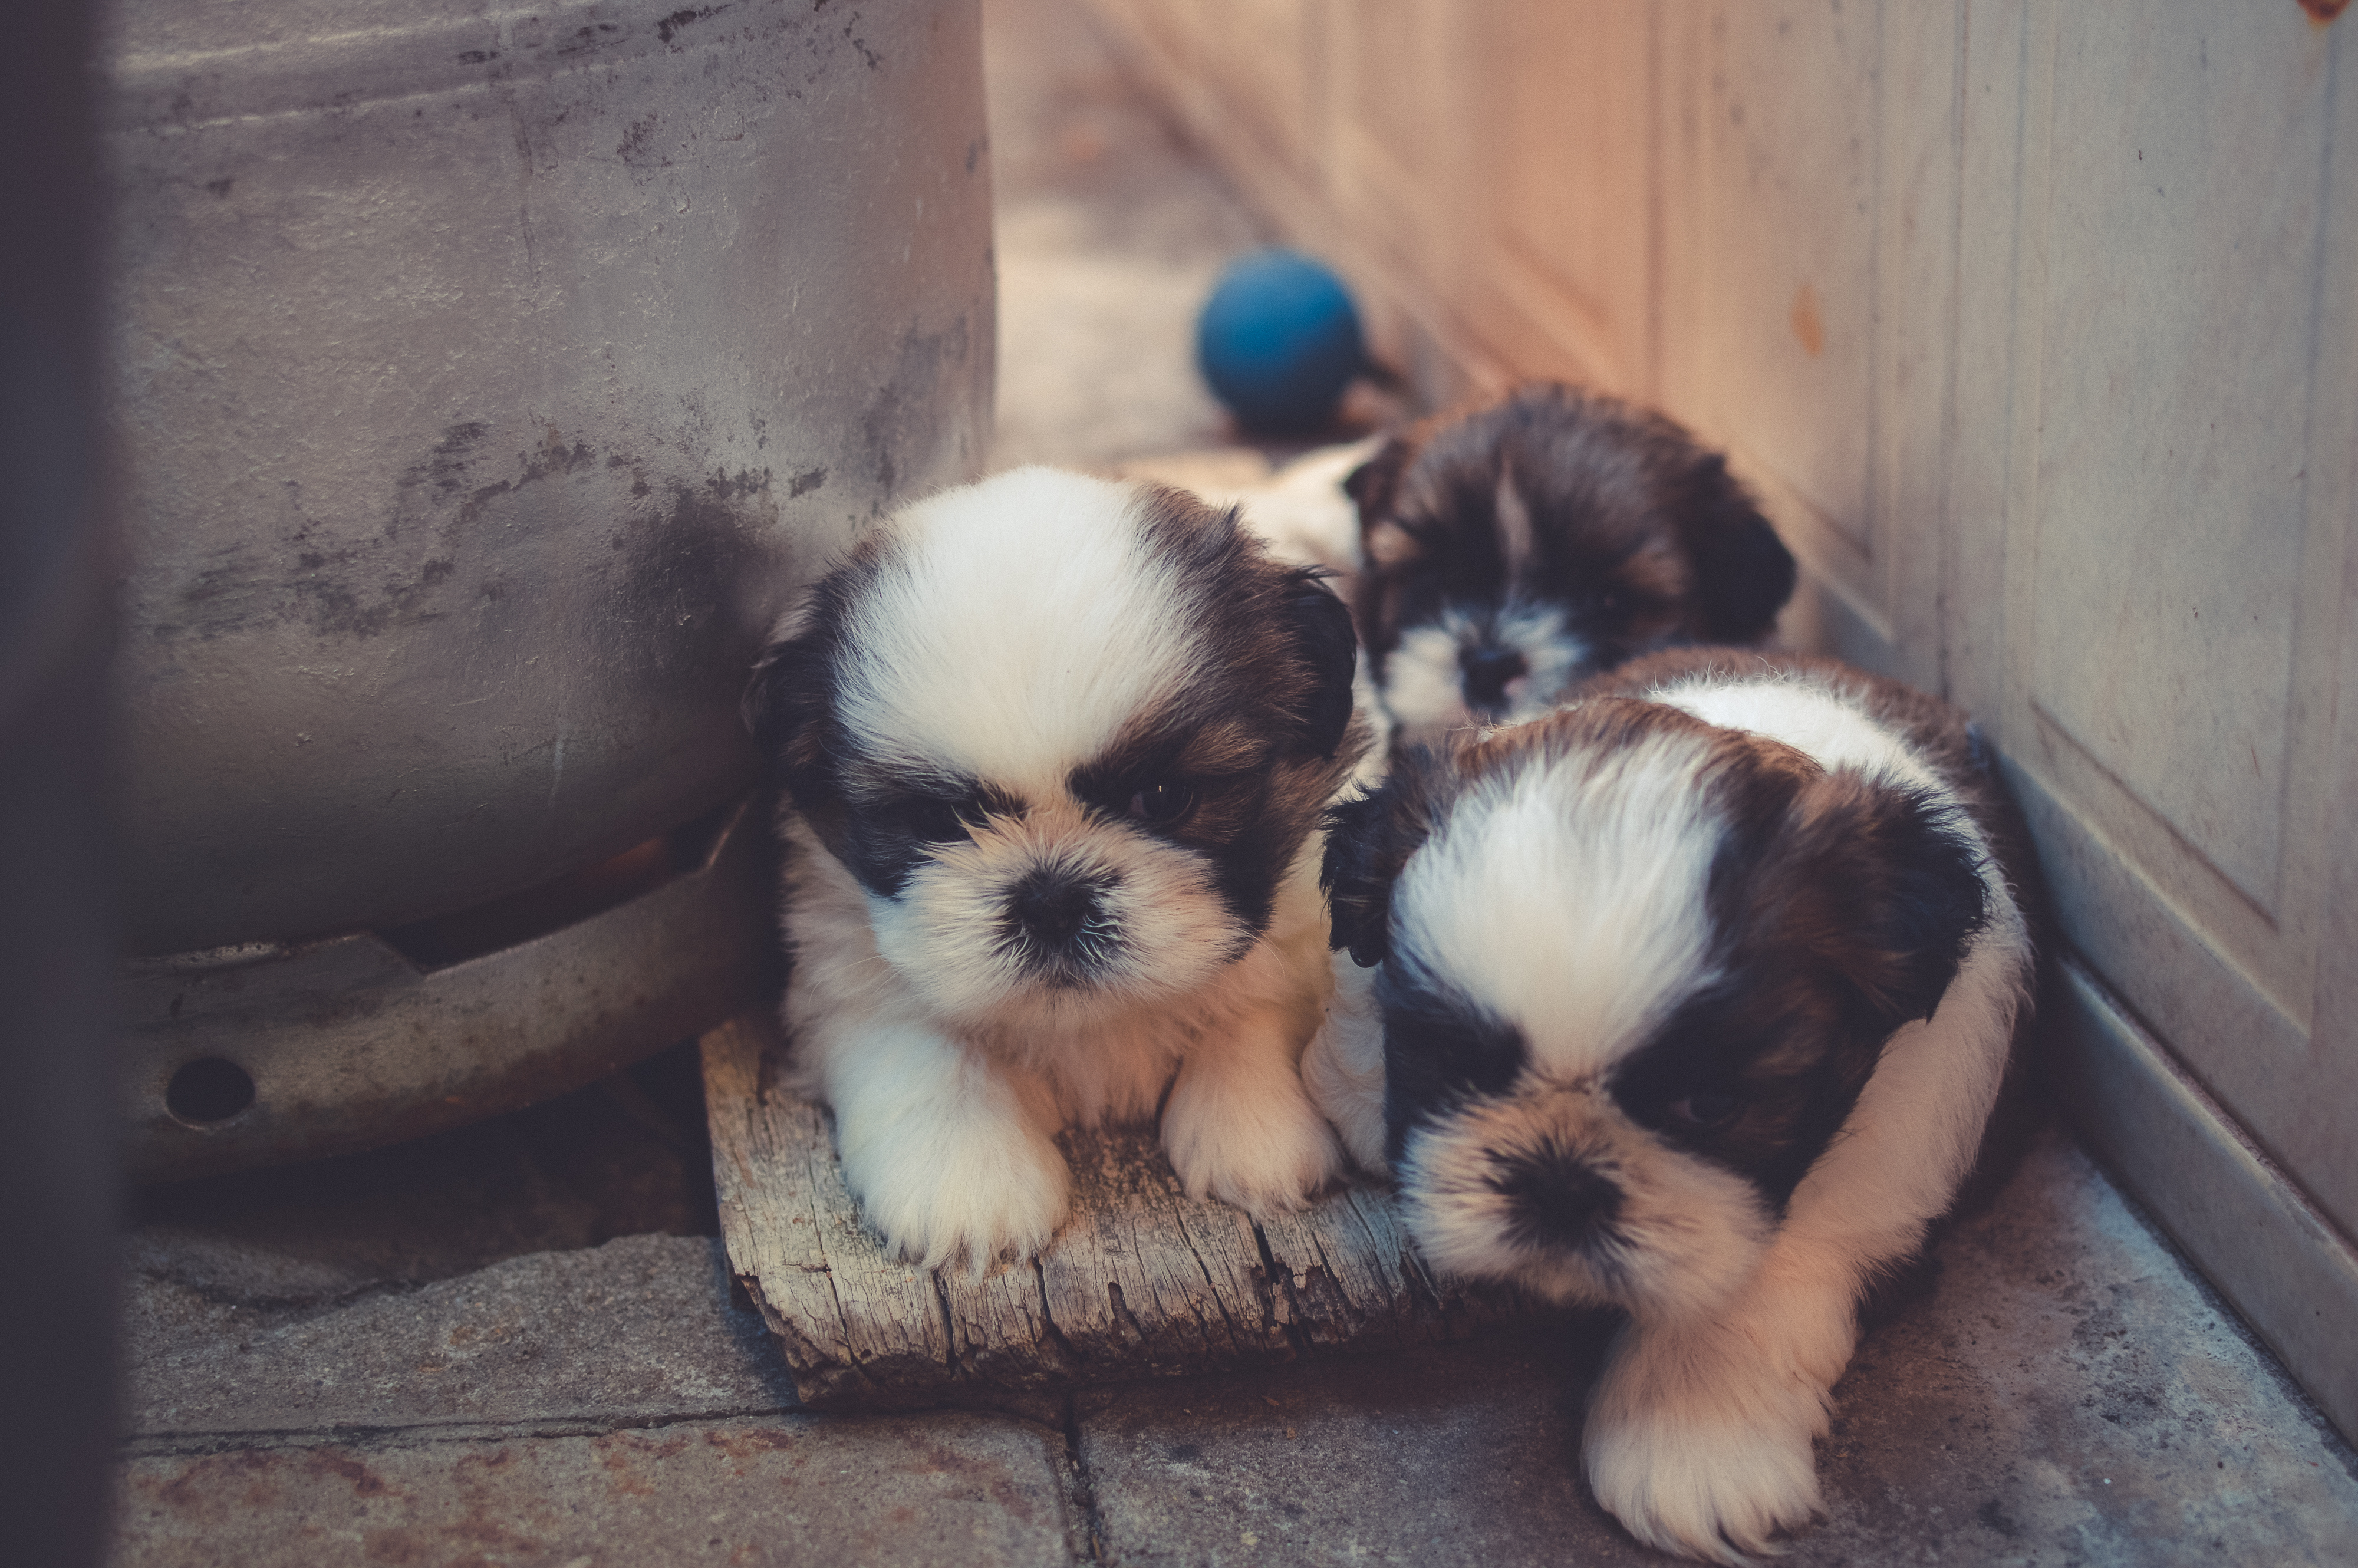 Cute Animal Wallpapers Free Download White And Brown Shih Tzu Mix Puppy With Minion Toy On